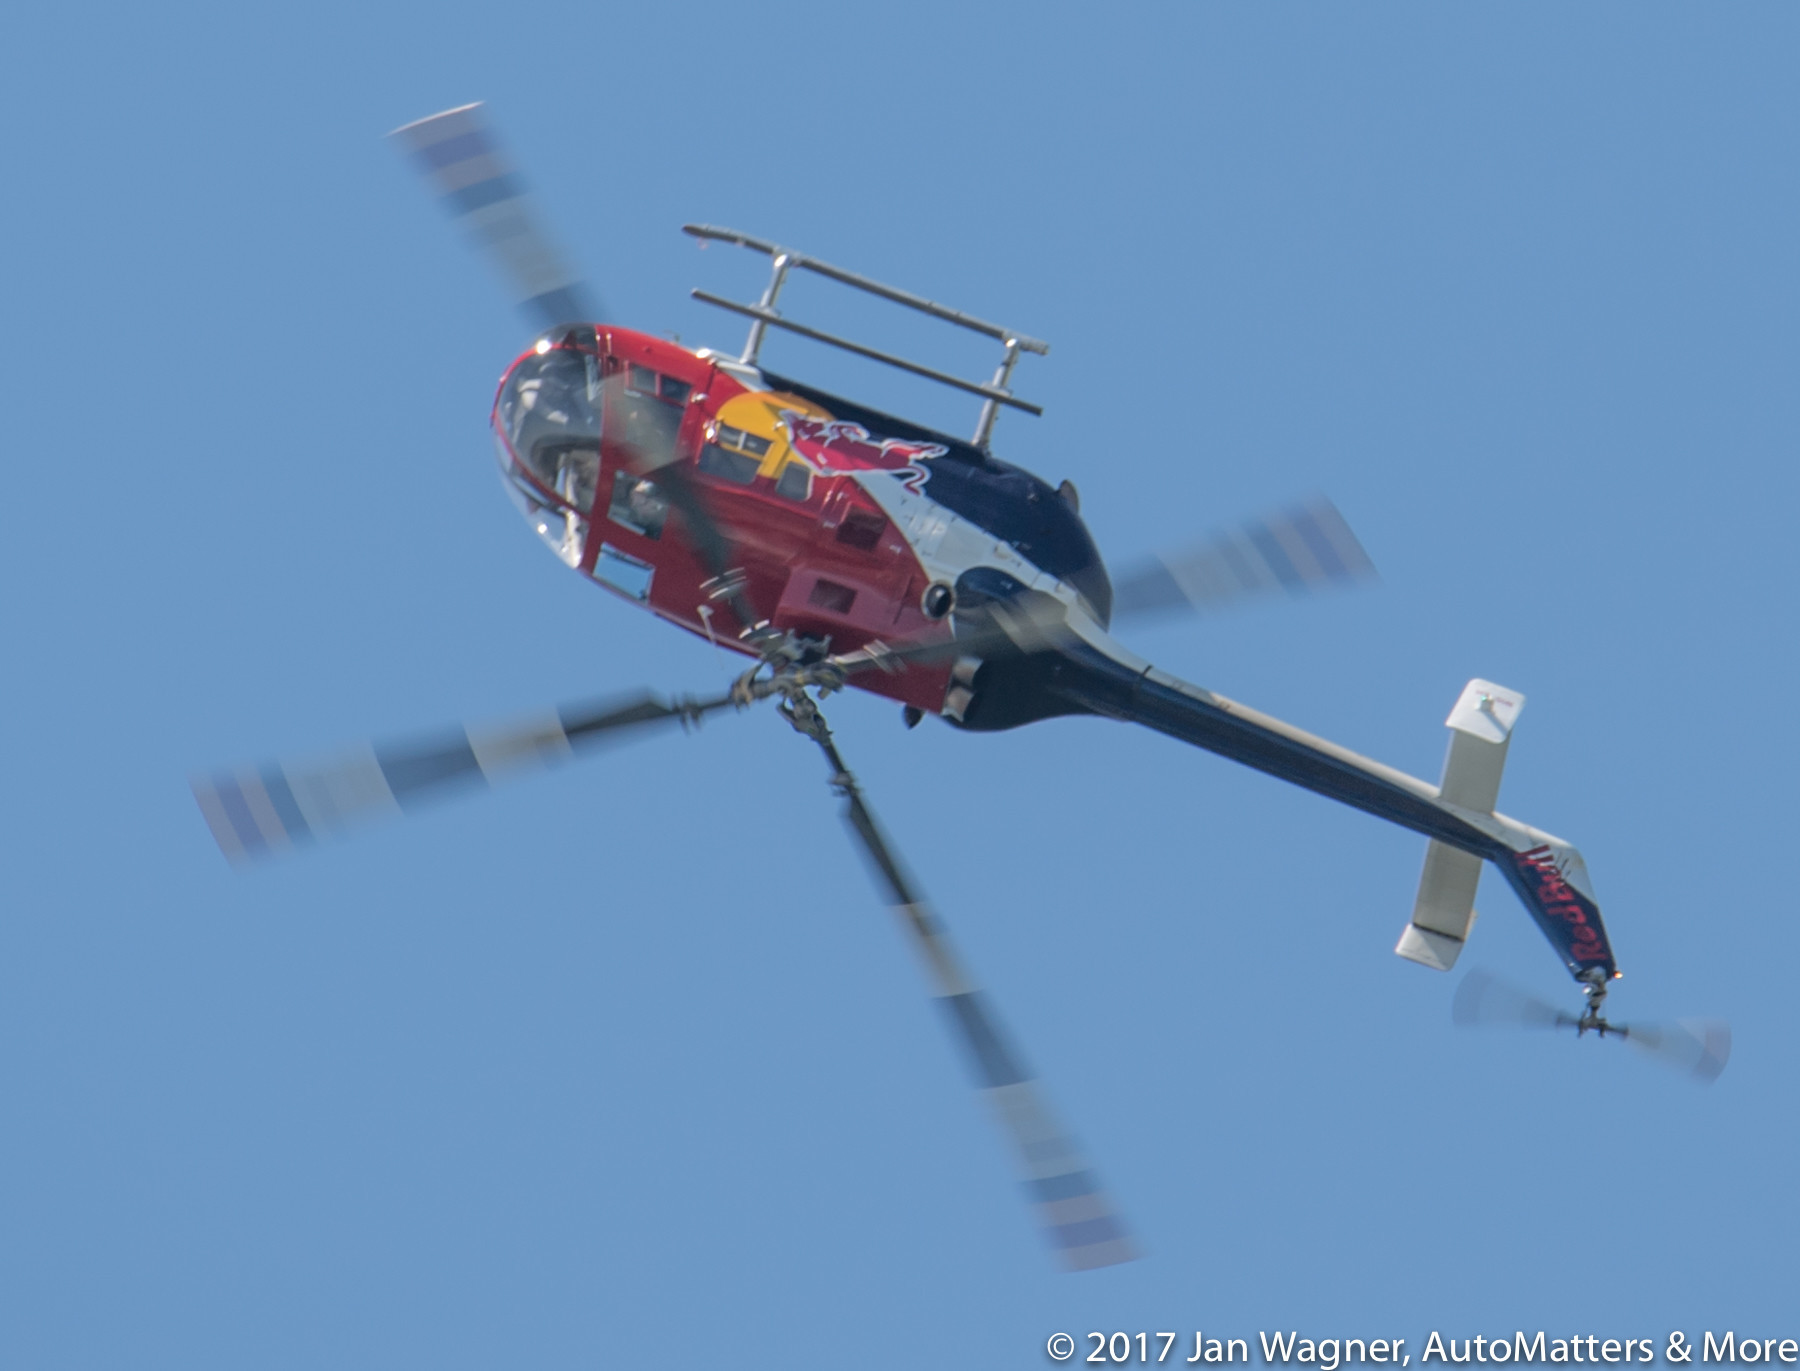 Bo105 aerobatic helicopter demonstration of death-defying looping flight